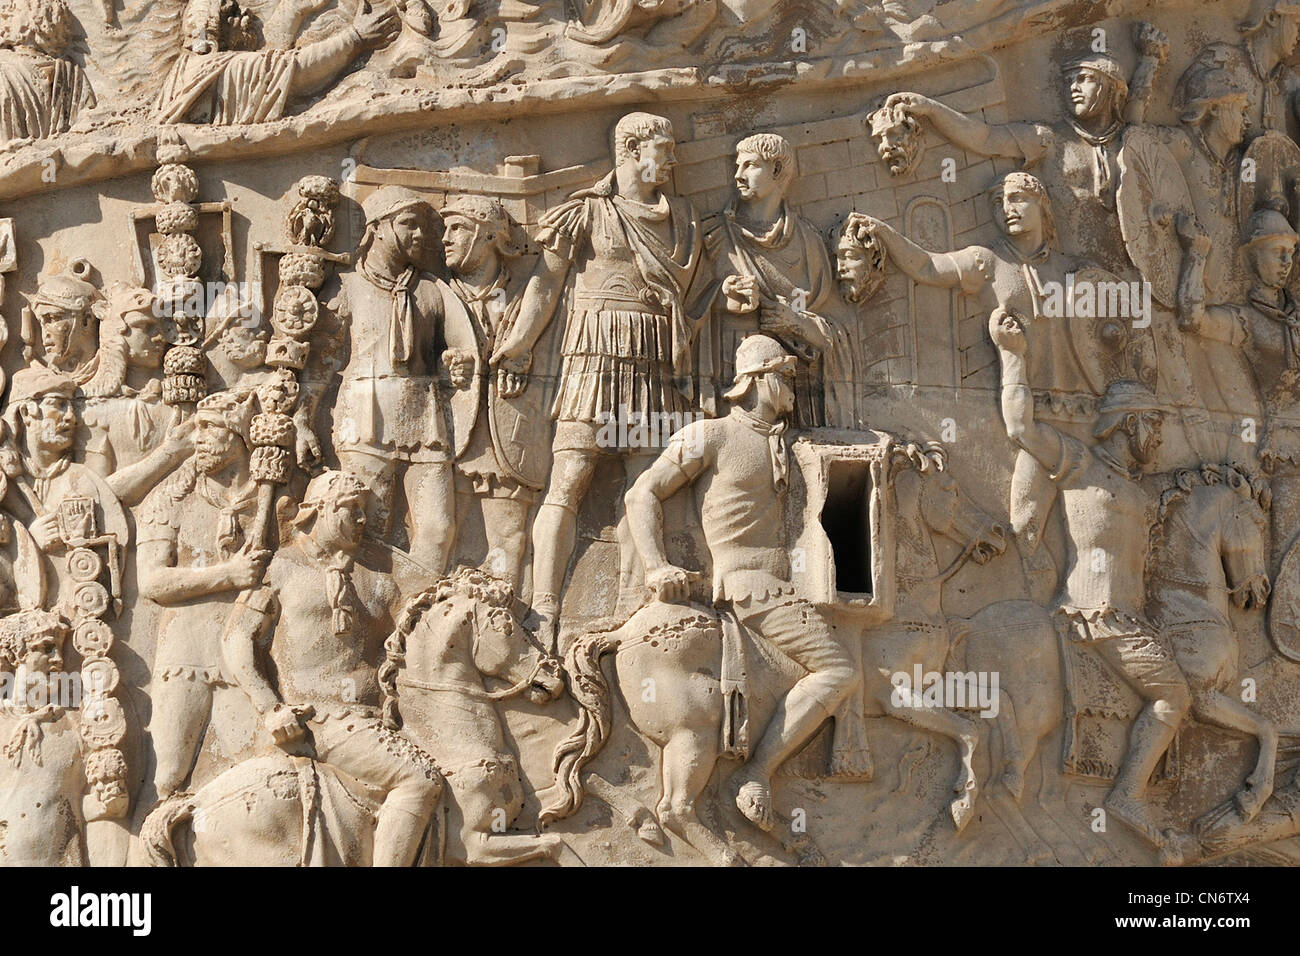 Rome. Italy. Trajan's Column (AD 113). Details of scenes depicting the Emperor Trajan's two campaigns in - Stock Image